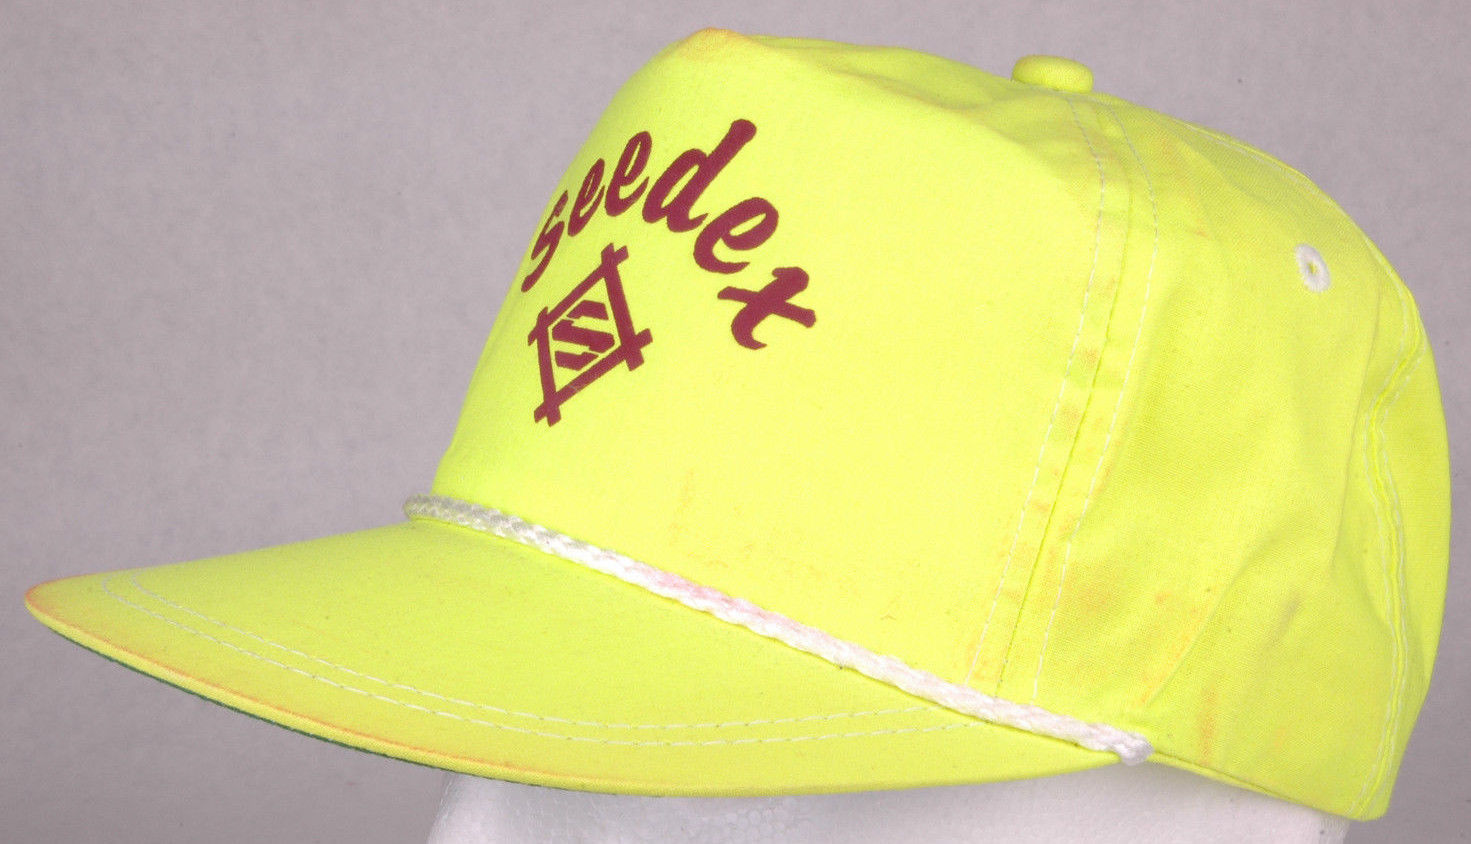 Vtg SEEDEX Hat-Yellow-Puff Letters-Agriculture Farm-Sugarbeet seeds-Rope Bill